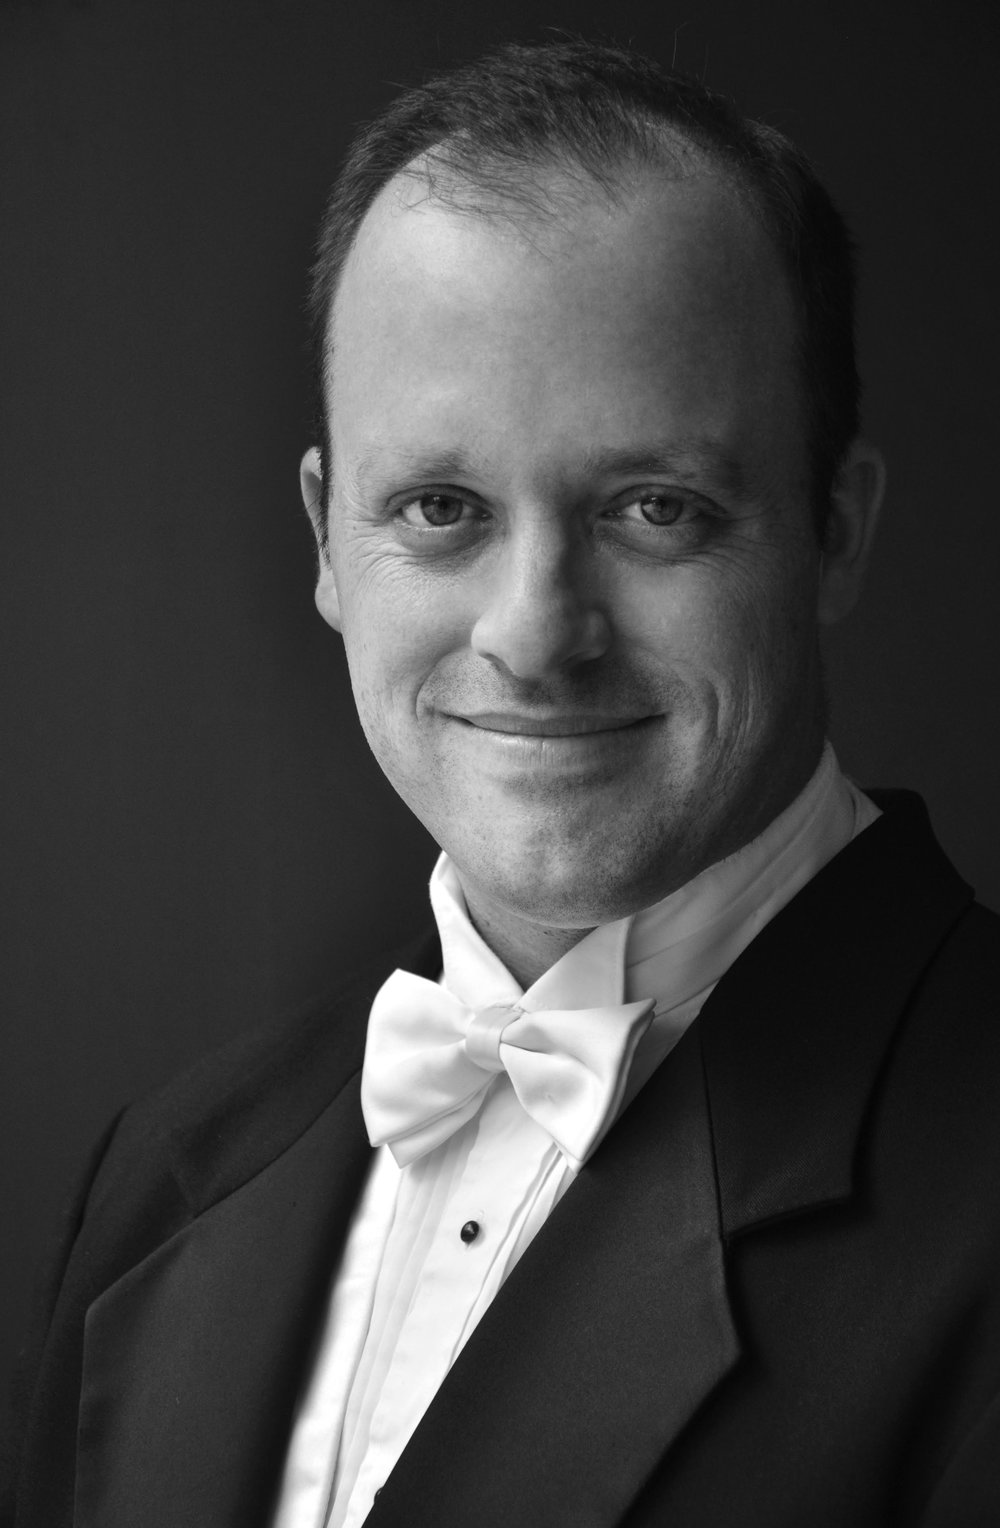 Andrew Crane,President Elect - Andrew Crane was named Associate Professor of Choral Conducting and conductor of the Brigham Young University Singers in 2015. Previous to this appointment, he served for four years as Director of Choral Activities at East Carolina University, and six years in the same position at California State University, San Bernardino. He is also the former choral director at Provo High School.Choirs under his direction have appeared by invitation at multiple conferences of the American Choral Directors Association and National Association for Music Education; and have won top prizes in international competitions. In 2015, he led the East Carolina University Chamber Singers to a first place finish in the 13th Maribor (Slovenia) International Choral Competition Gallus, the only American choir to win in the history of the contest.Since coming to BYU, he has conducted the University Singers in joint concerts with the King's Singers, and also prepared the choir for performances of Handel's Messiah with conductor Nigel Short and the British vocal ensemble Tenebrae. In February 2017, BYU Singers will appear in an invited performance at the state convention of the Utah Music Educators Association. Additionally, Dr.Crane enjoys a career as a professional solo and ensemble tenor, having appeared with such groups as the Los Angeles Bach Festival, Santa Fe Desert Chorale, Yale Choral Artists, Vox Humana, Spire Chamber Ensemble, Tennessee Chamber Chorus, Lansing Symphony Orchestra, North Carolina Master Chorale, Carnegie Hall Festival Chorus, and others.Dr.Crane is active as a conductor of honor choirs, clinician, guest lecturer, and accompanist. Additionally, he serves as editor of the Andrew Crane Choral Series through Walton Music; and as the College and University Repertoire and Resources chair for Utah ACDA. His degrees include the BM in Music Education and MM in Choral Conducting from Brigham Young University, and the Doctor of Musical Arts from Michig